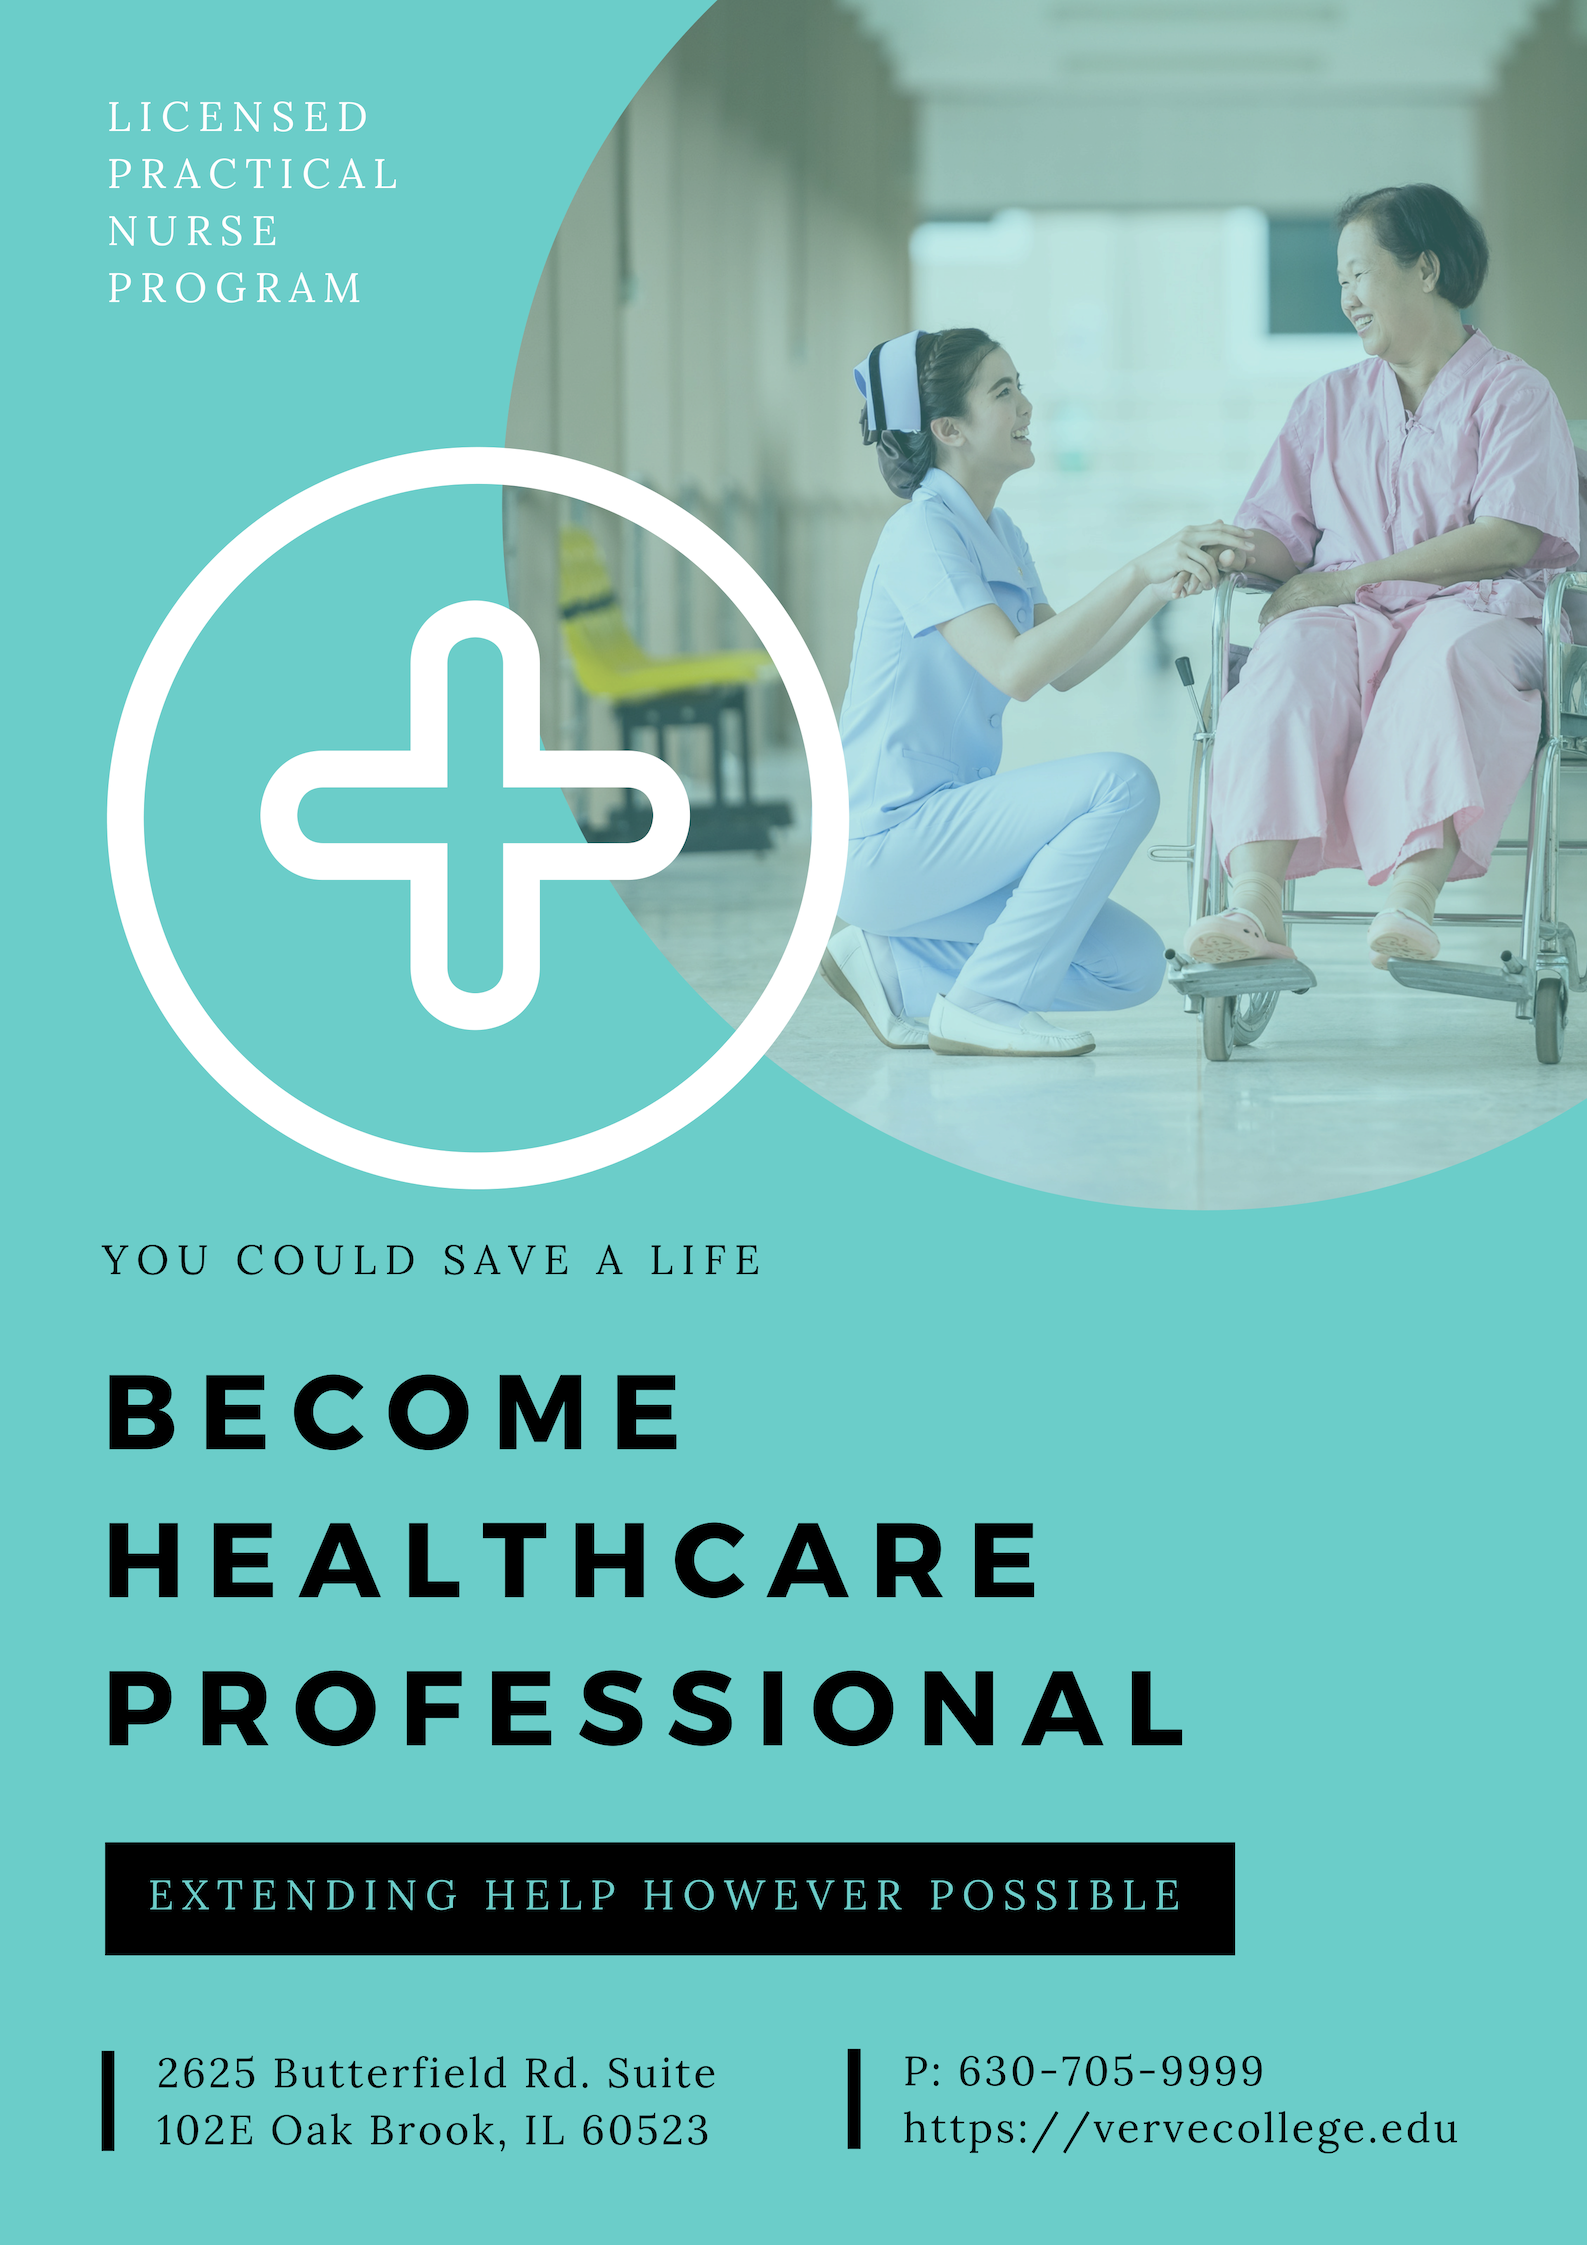 Lpn Licensed Practical Nursing College With Images Practical